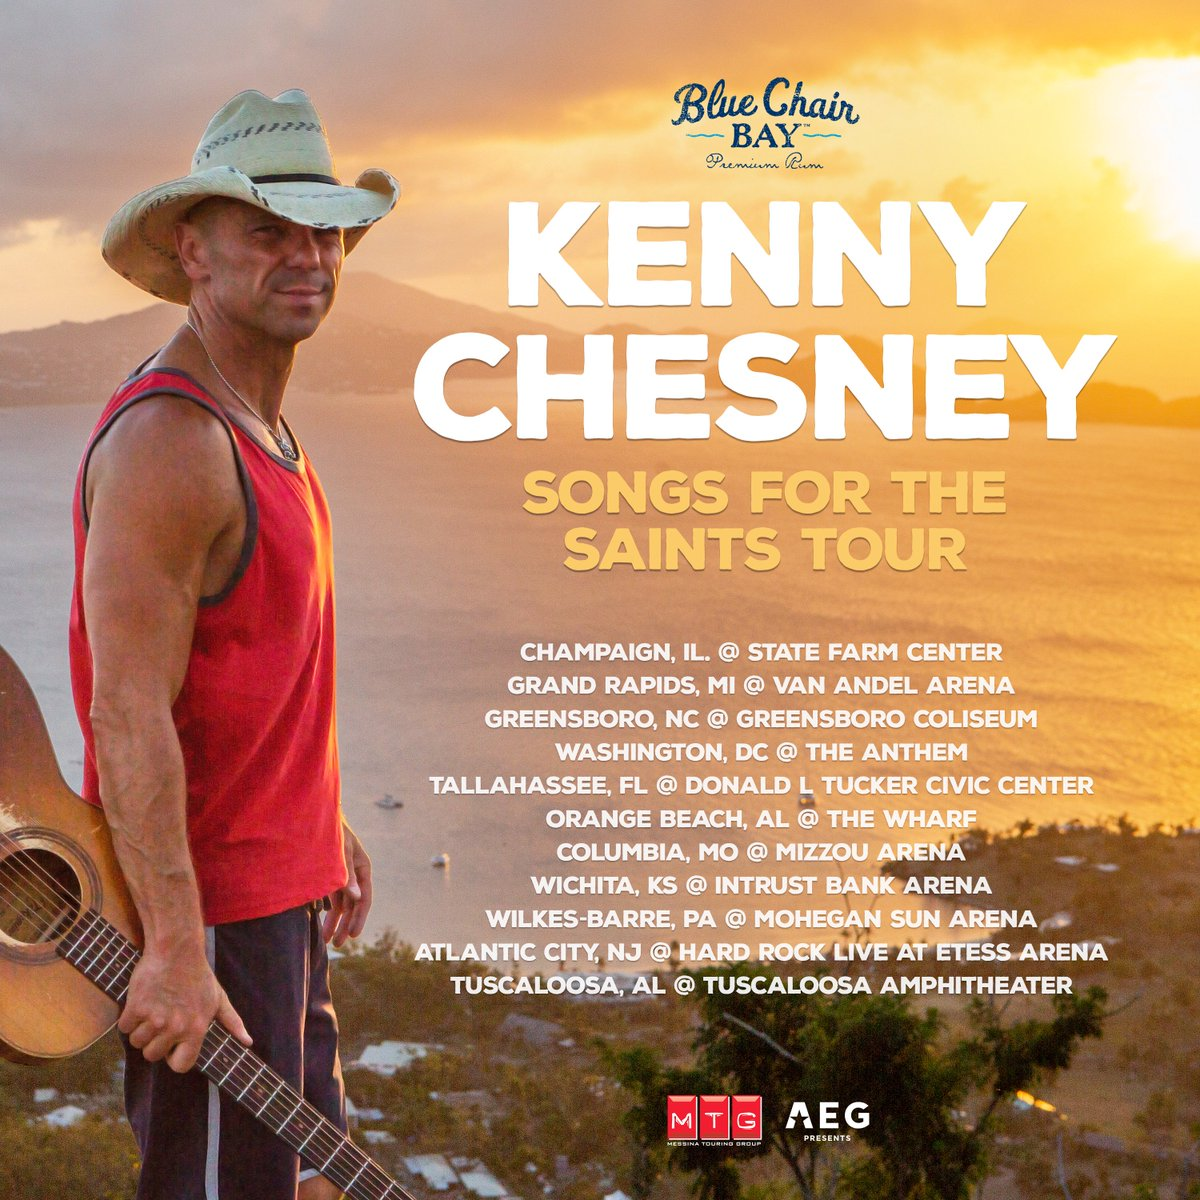 048a16ae684 Kenny Chesney on Twitter